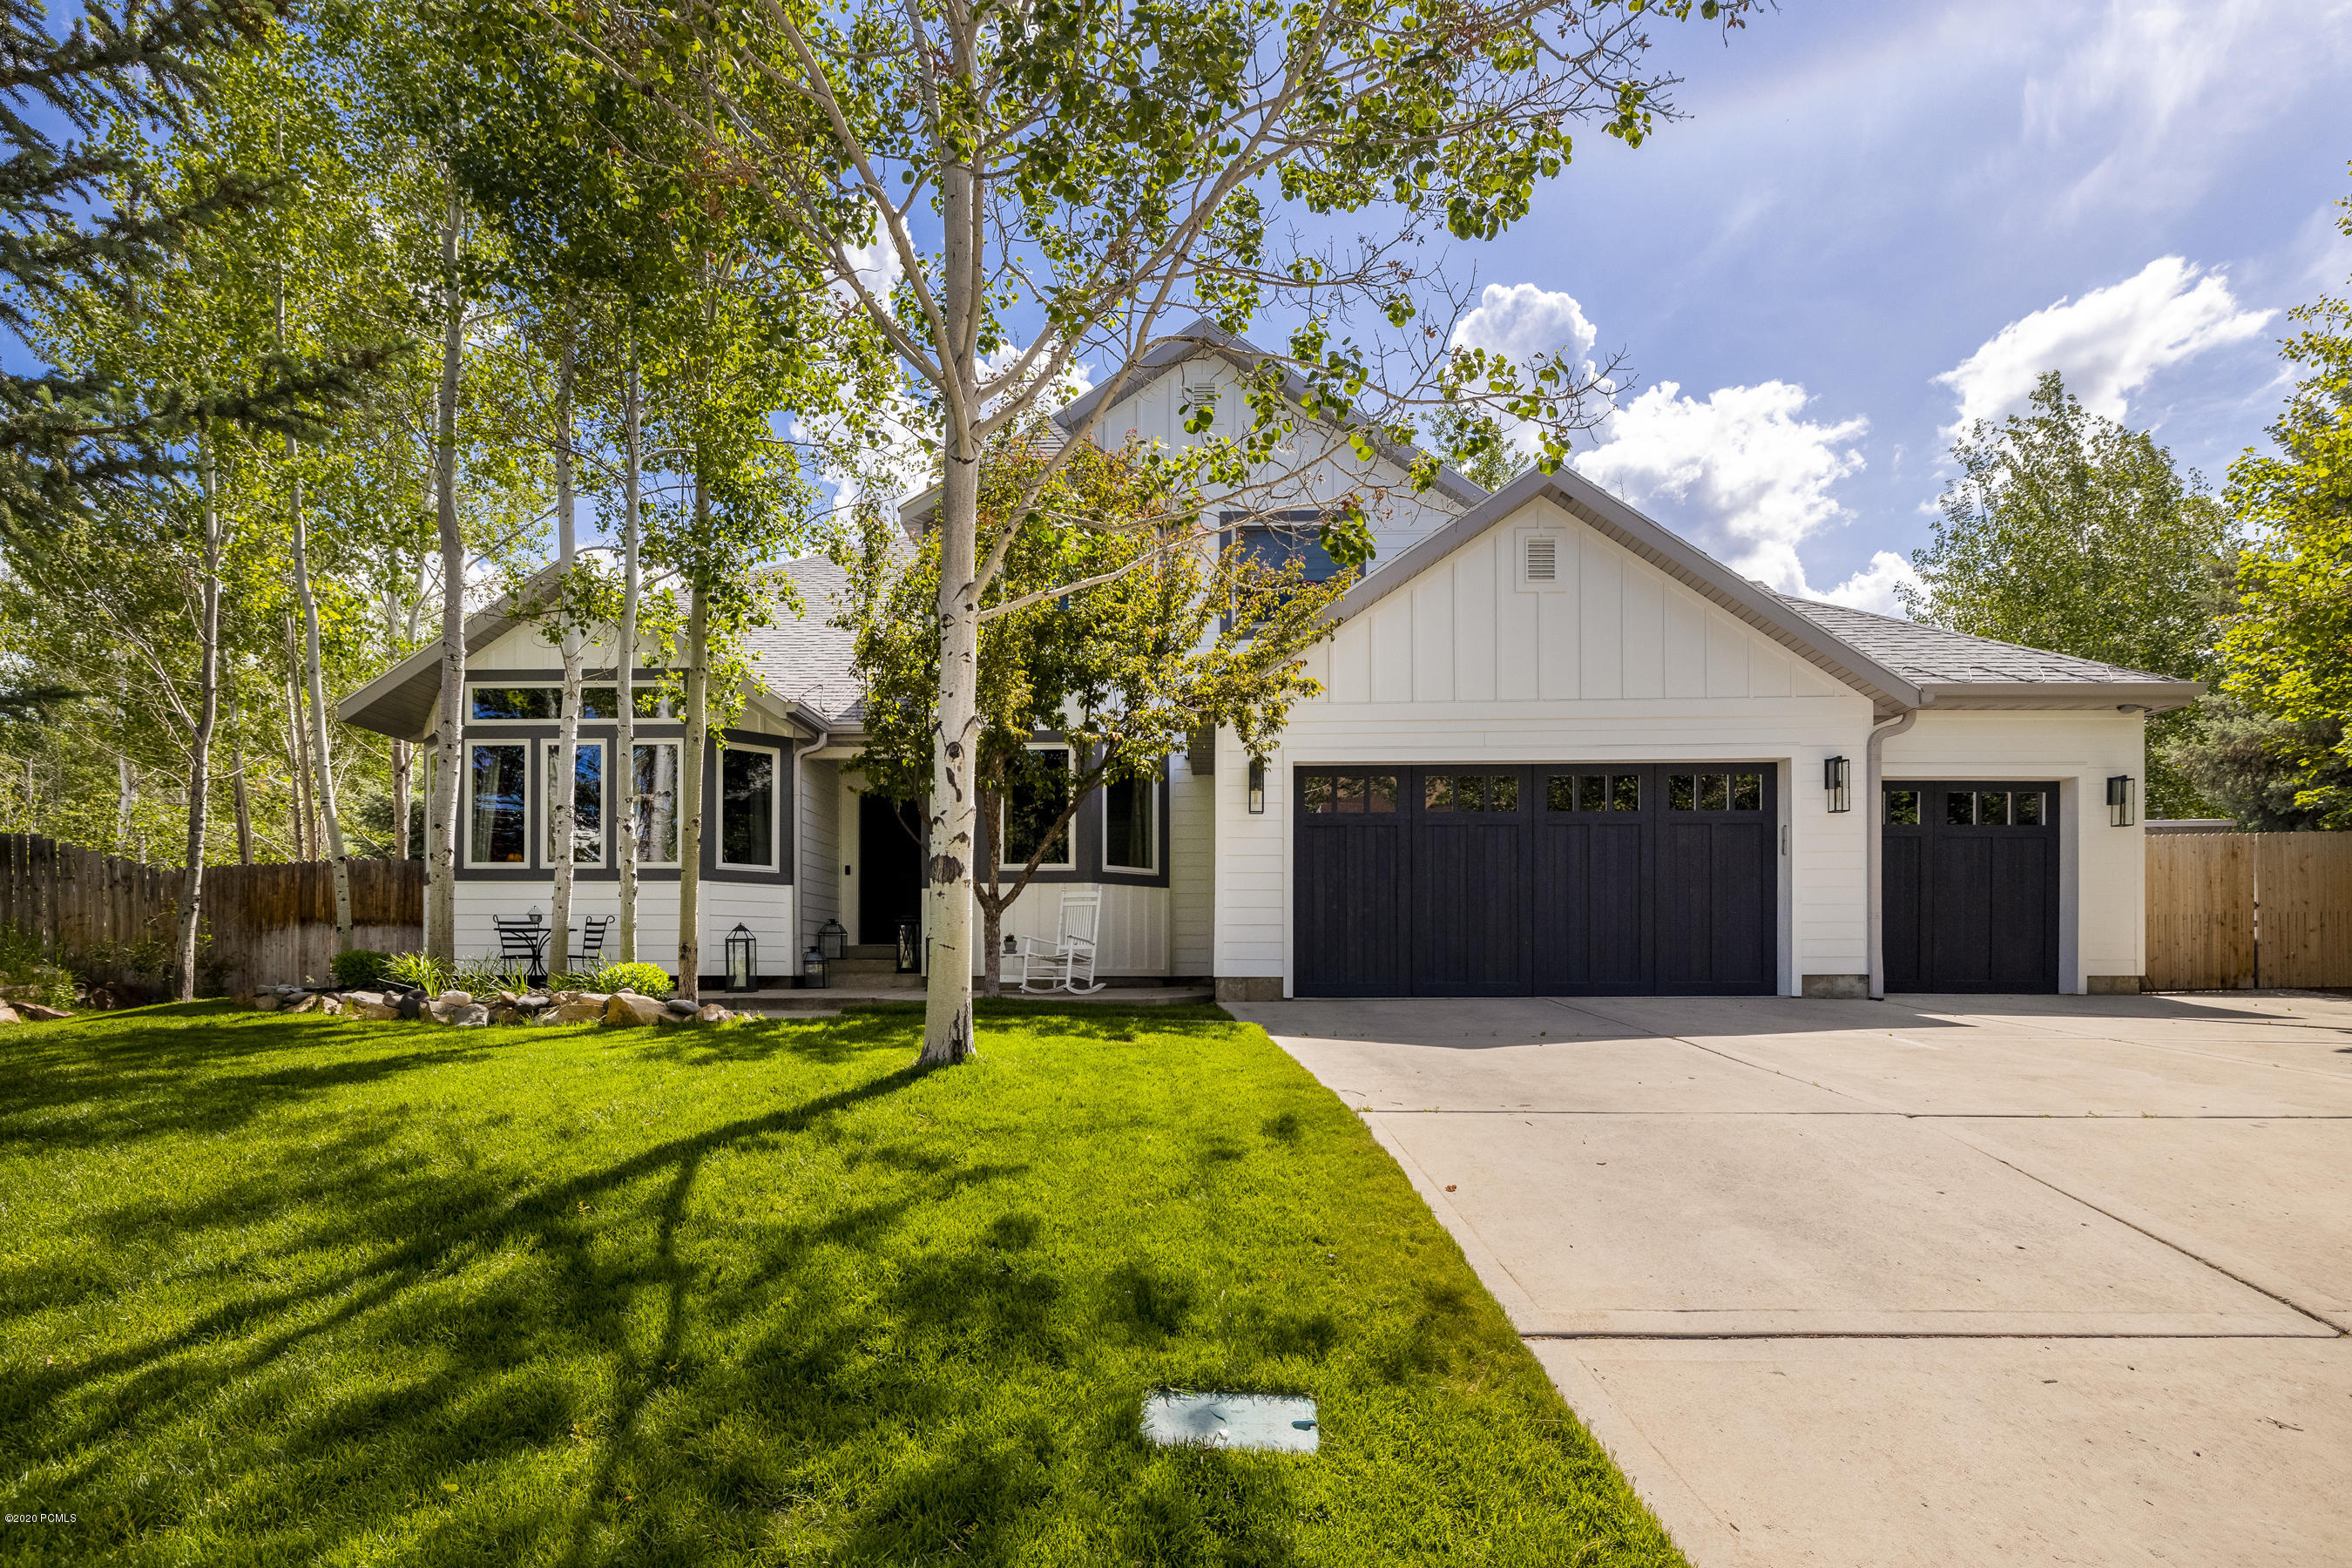 2640 Butch Cassidy Court, Park City, Utah 84060, 6 Bedrooms Bedrooms, ,4 BathroomsBathrooms,Single Family,For Sale,Butch Cassidy,20190109112430415765000000